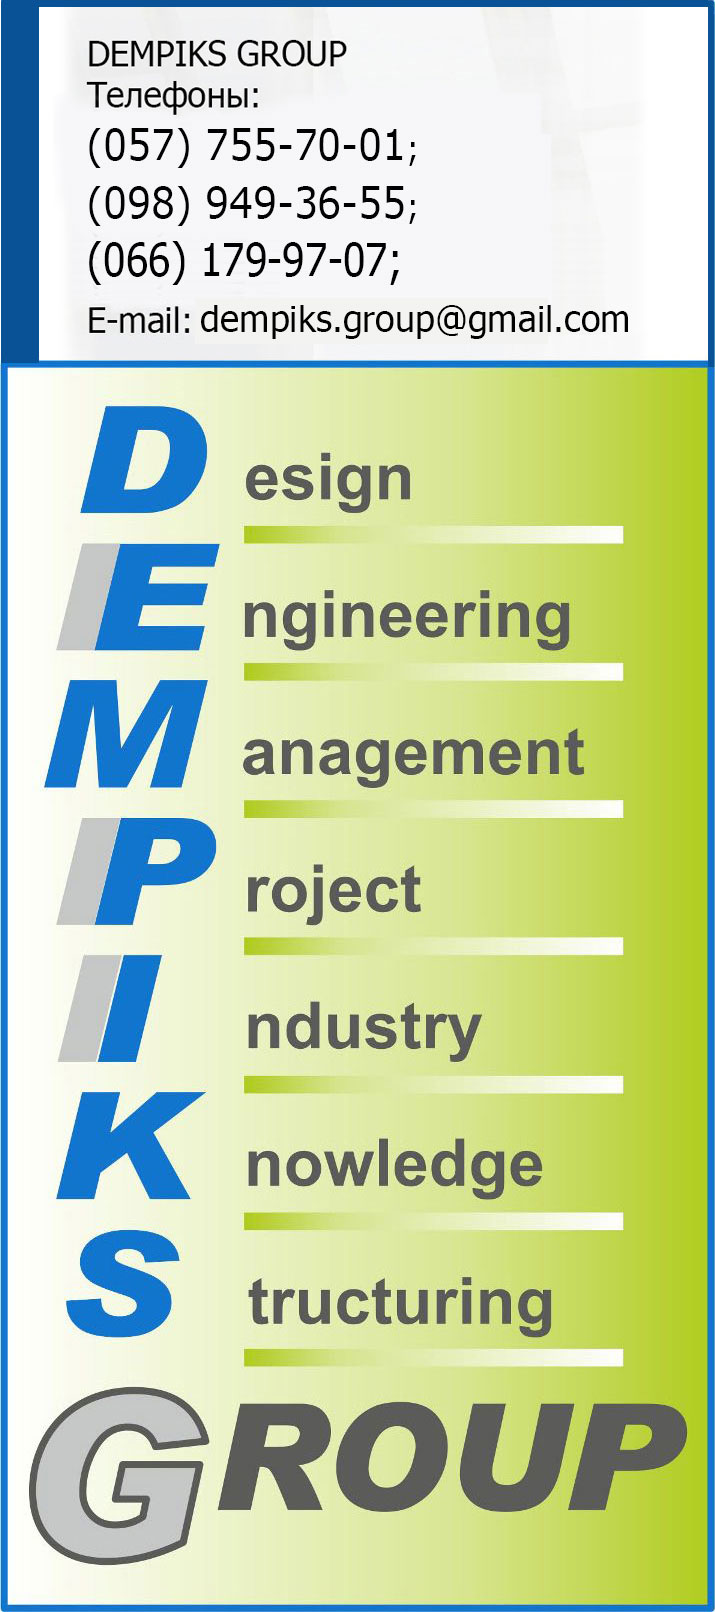 DempiksGroup